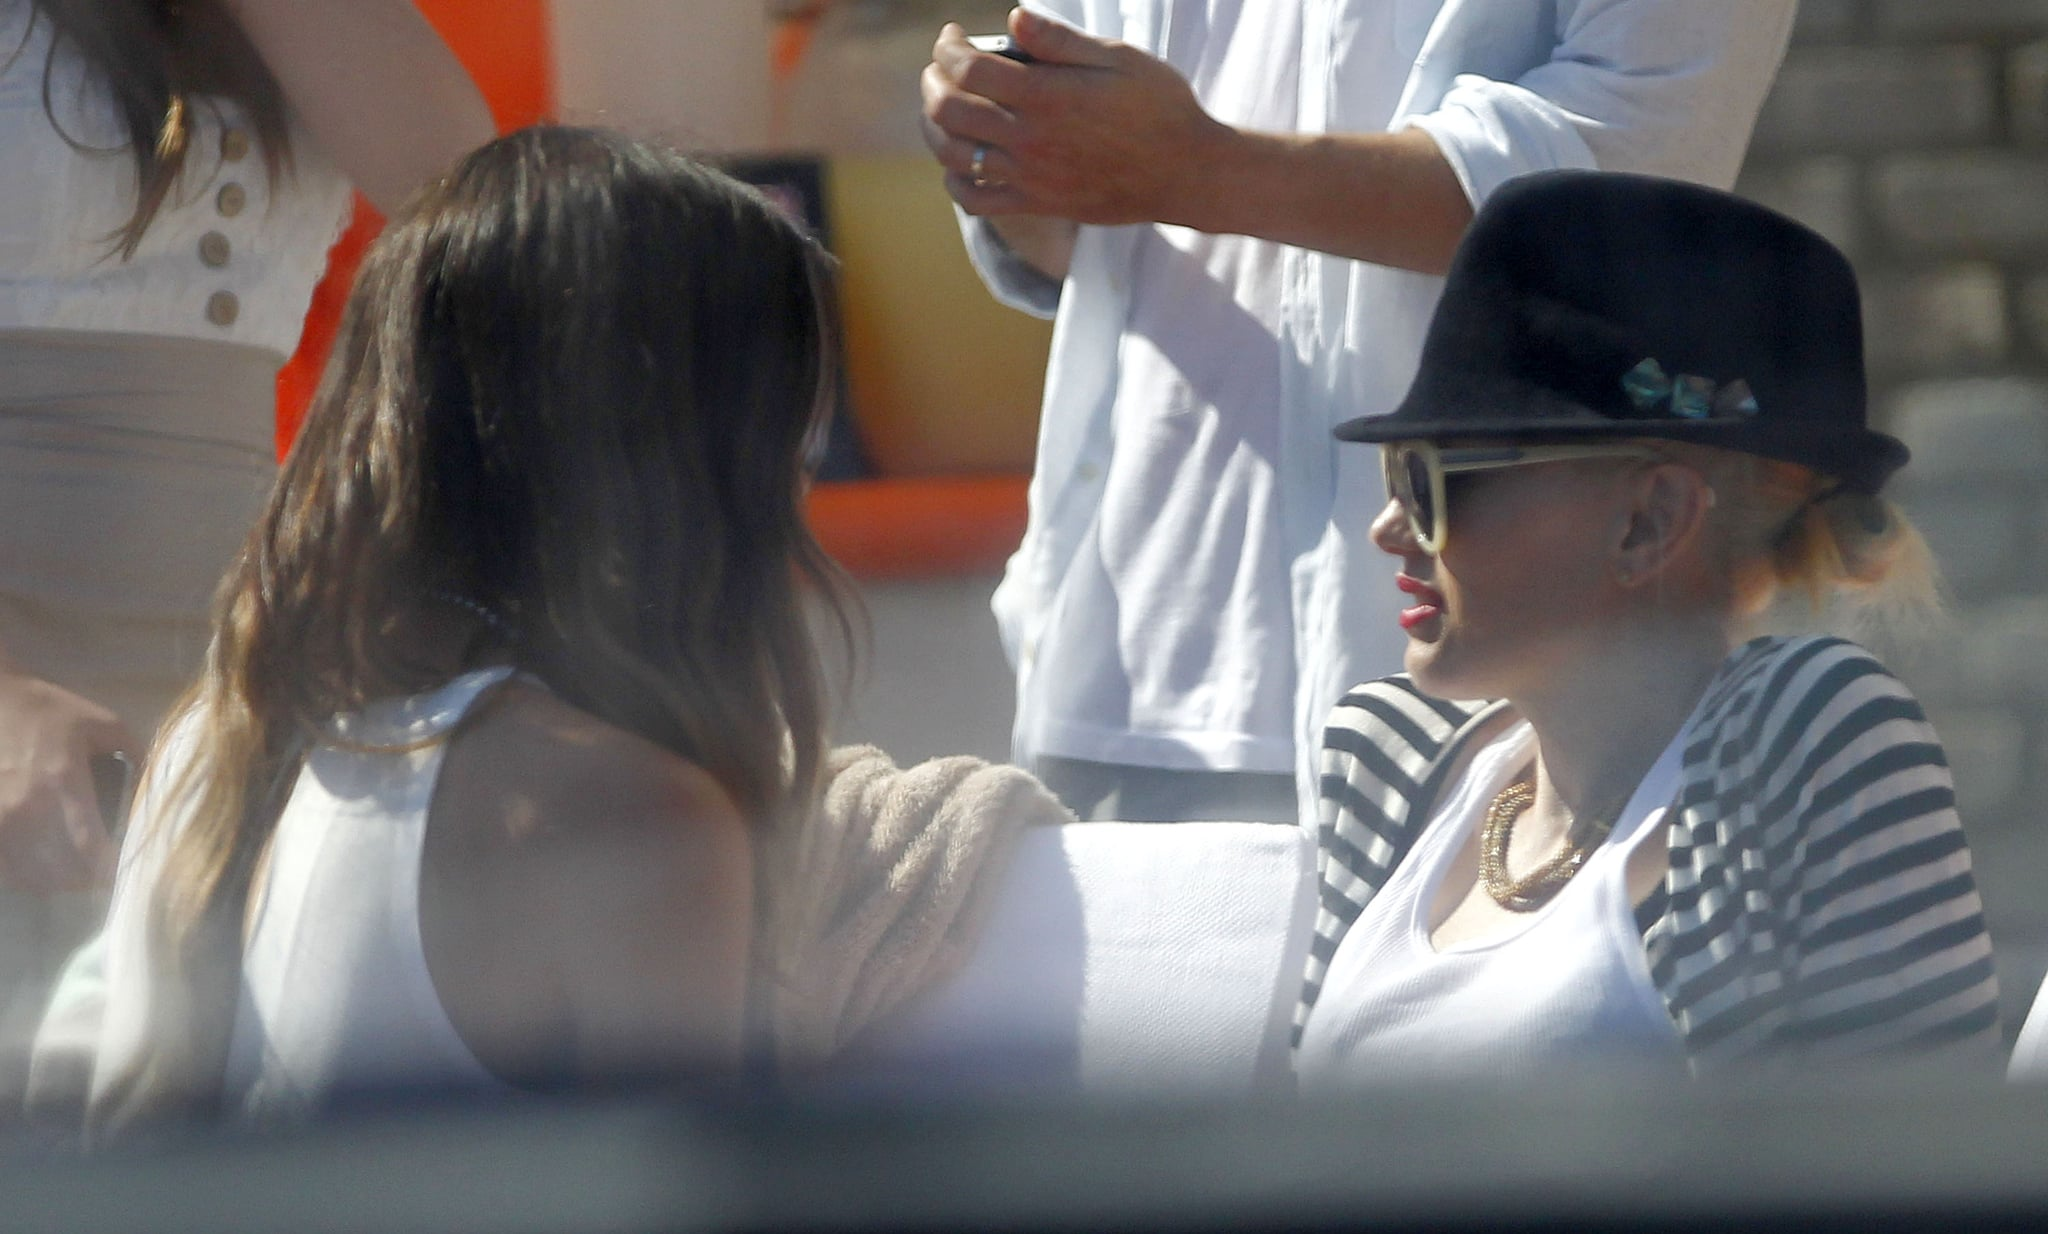 Kate Beckinsale and Gwen Stefani spent time together at a Memorial Day party at Joel Silver's house in LA.